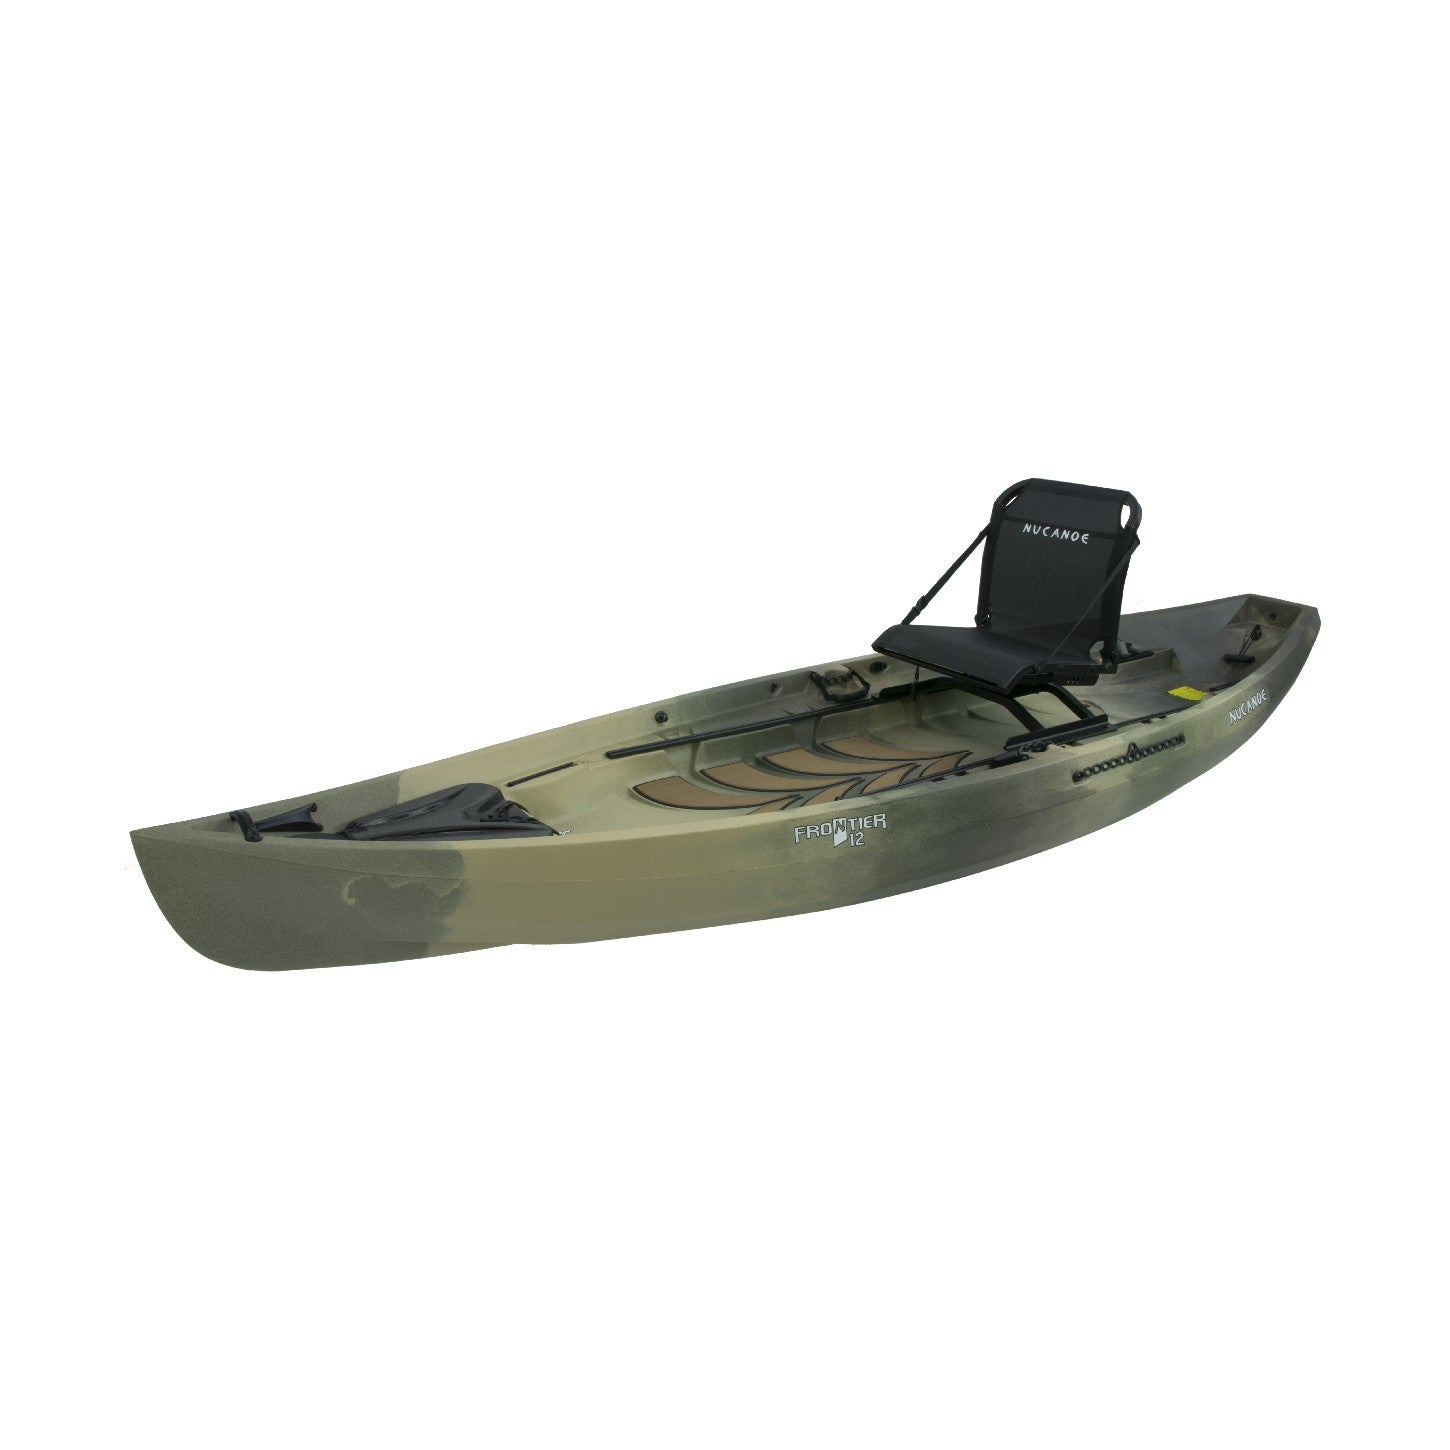 NuCanoe Frontier 12 Fishing Kayak 2020 | Army Camo - Kayak Creek